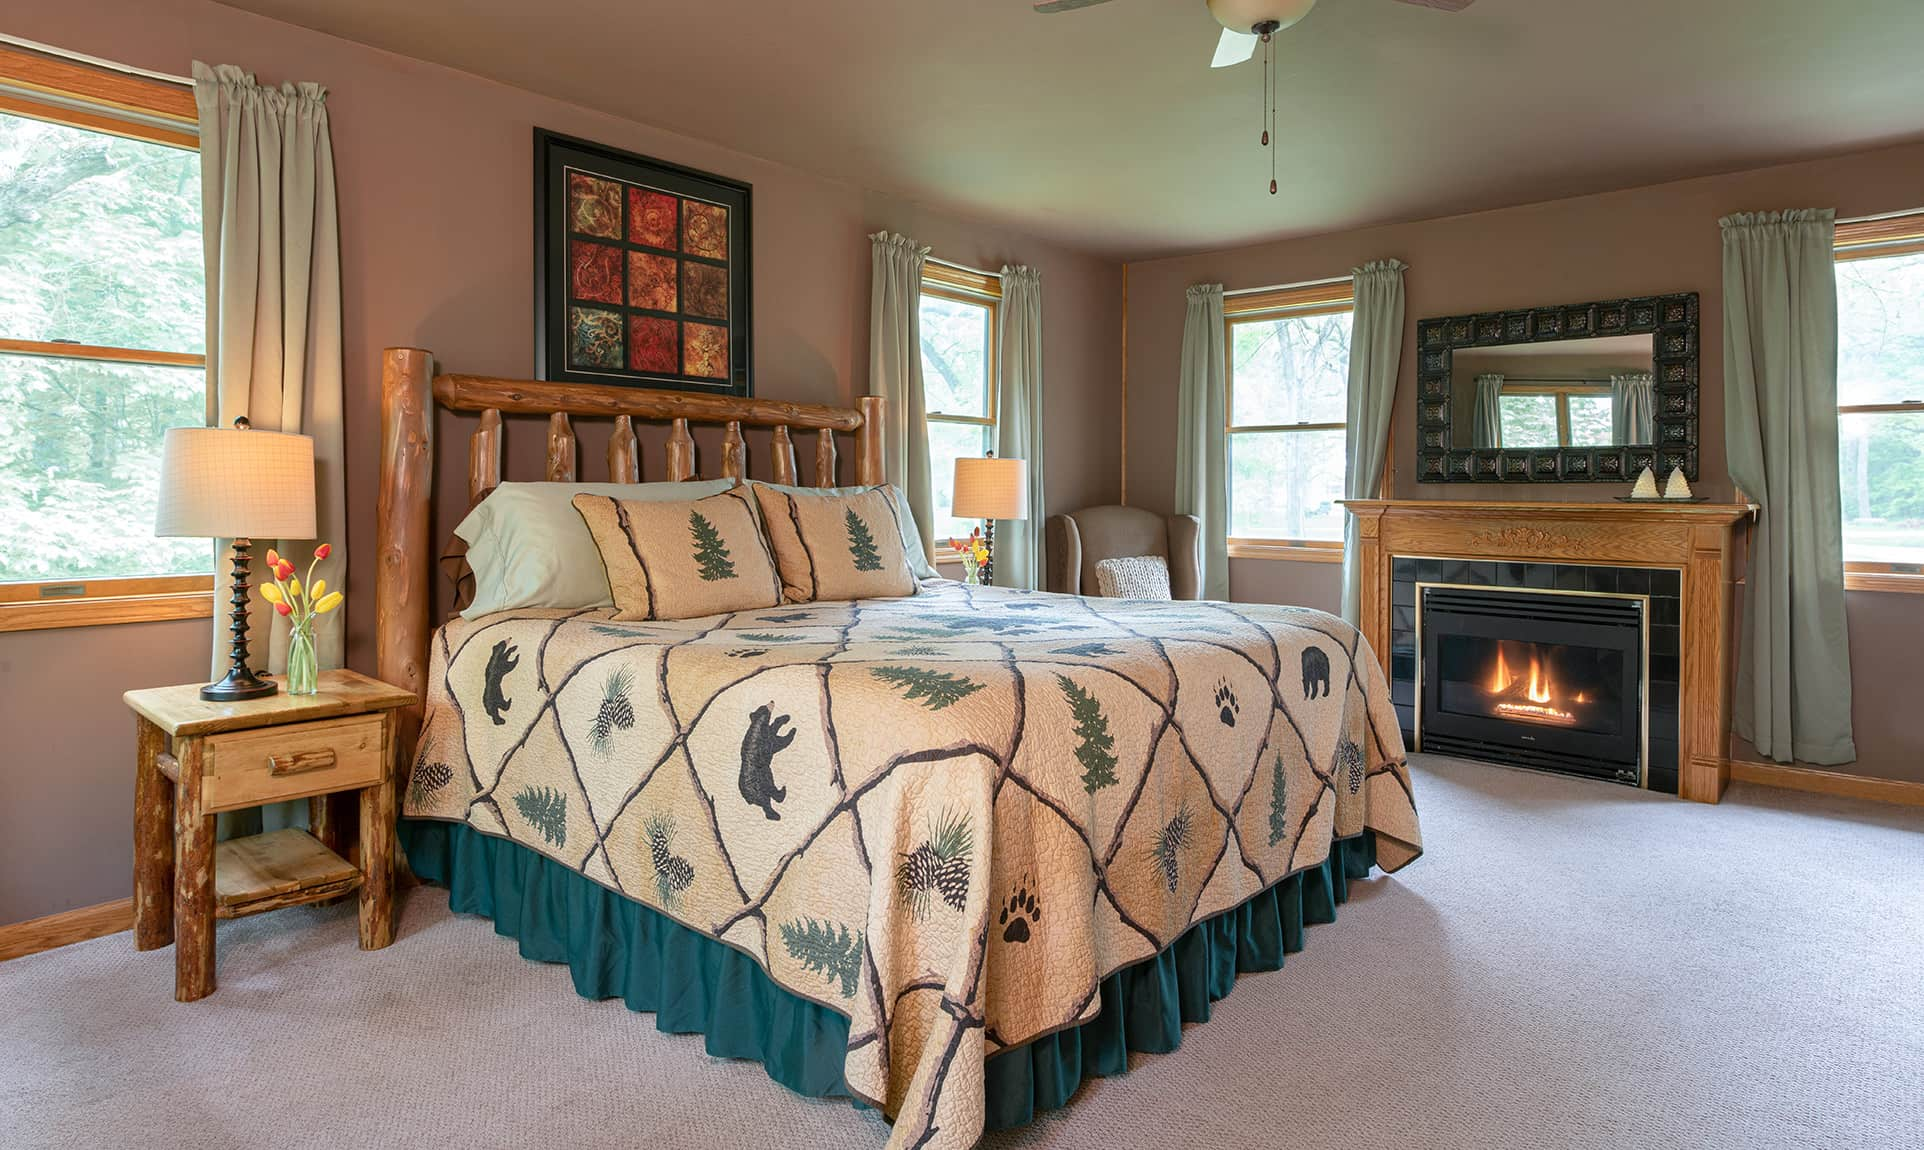 Jack's Deluxe Cabin bed for a romantic Illinois cabin getaway